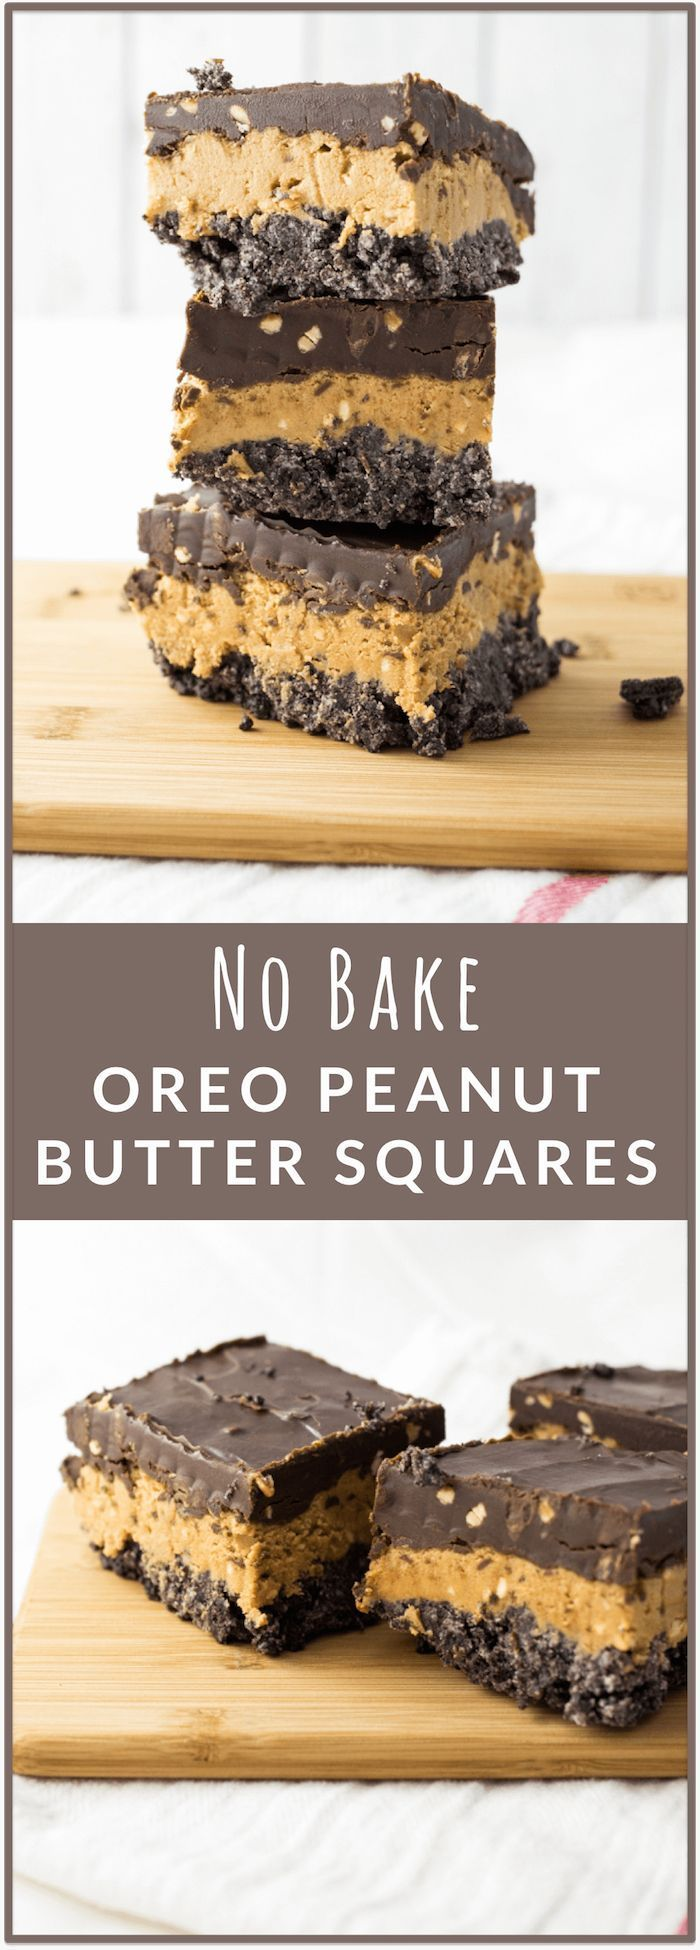 No-Bake Oreo Peanut Butter Bars with Chocolate Chips - Savory Tooth